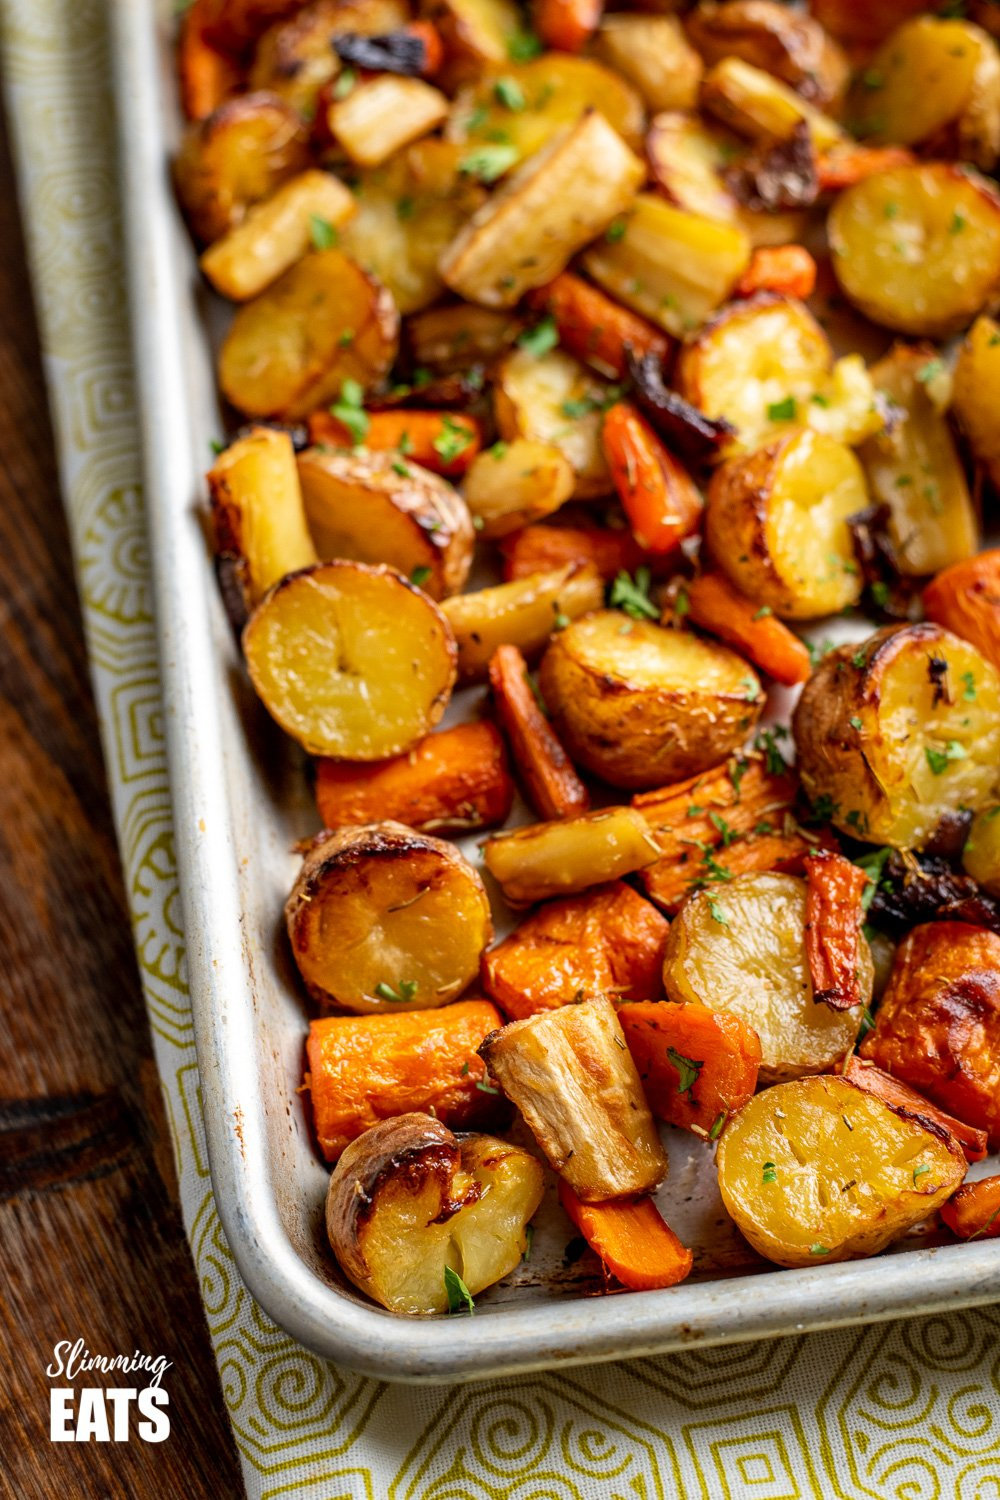 close up of Rosemary Roasted Potatoes, Parsnips, Carrots and Onion on baking tray sprinkled with fresh parsley